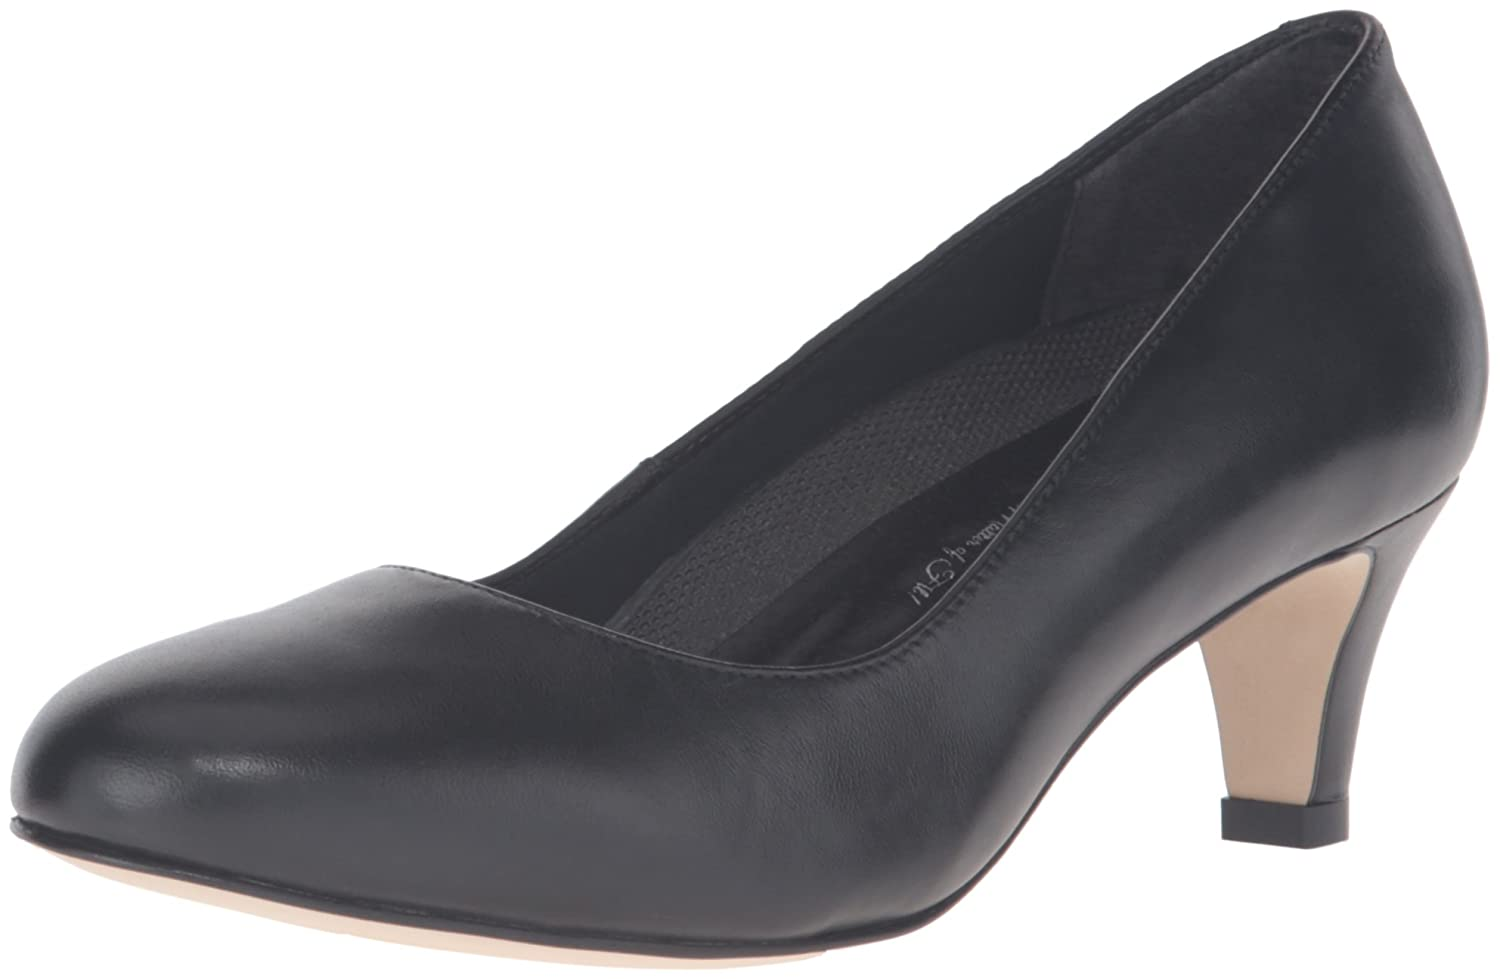 Walking Cradles Women's Joy Dress Pump B01BNFRA4O 8.5 W US|Black Leather